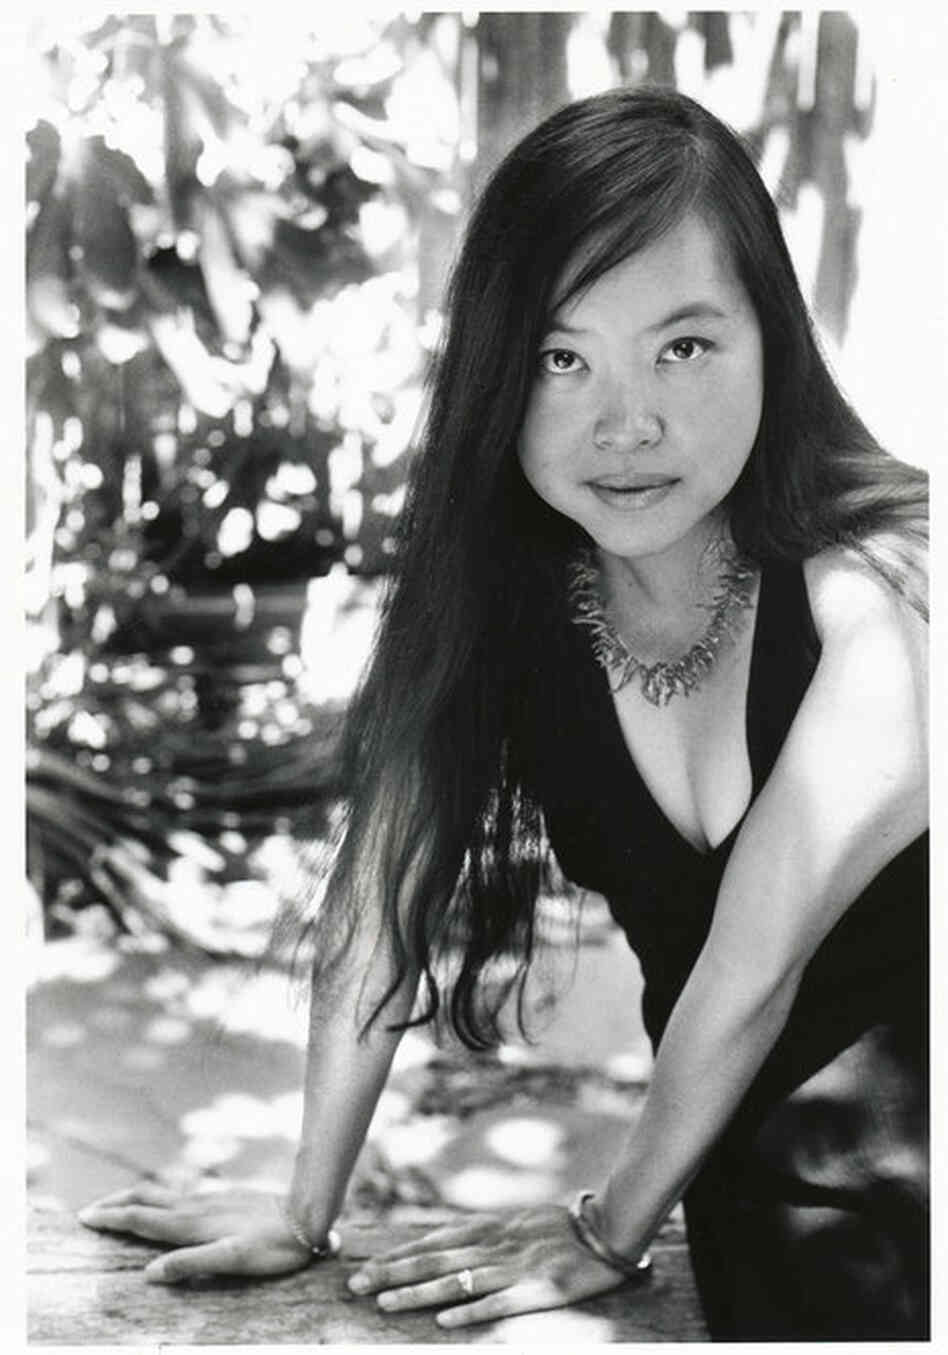 Monique Truong, Brooklyn, N.Y., 2006